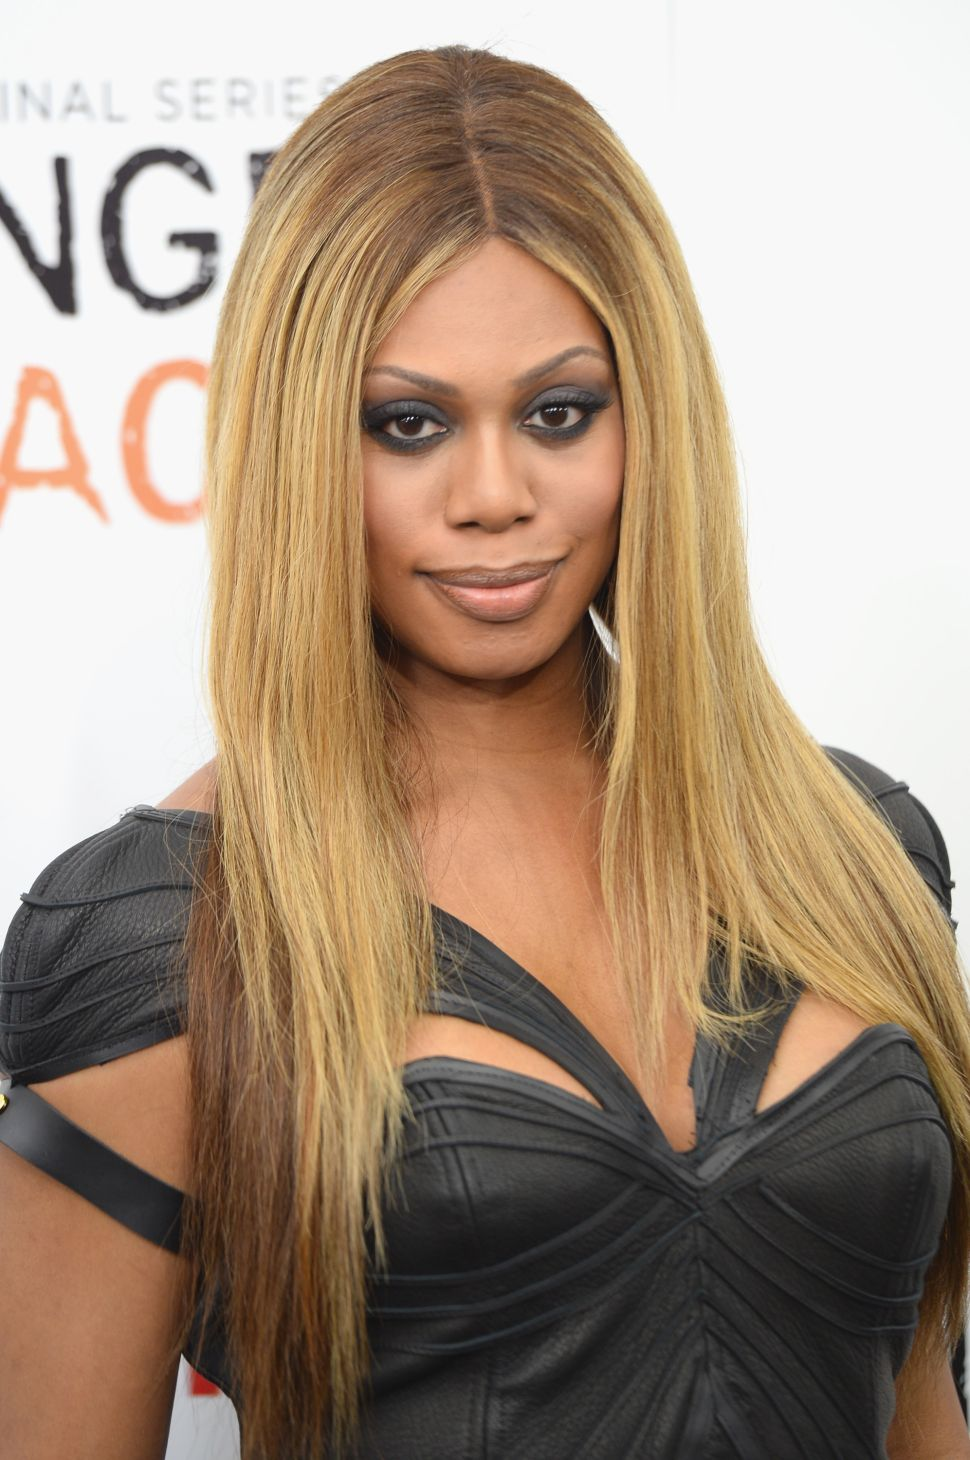 The Transformer: Laverne Cox's Rising Star From 'Diddy' to 'Orange is the New Black'